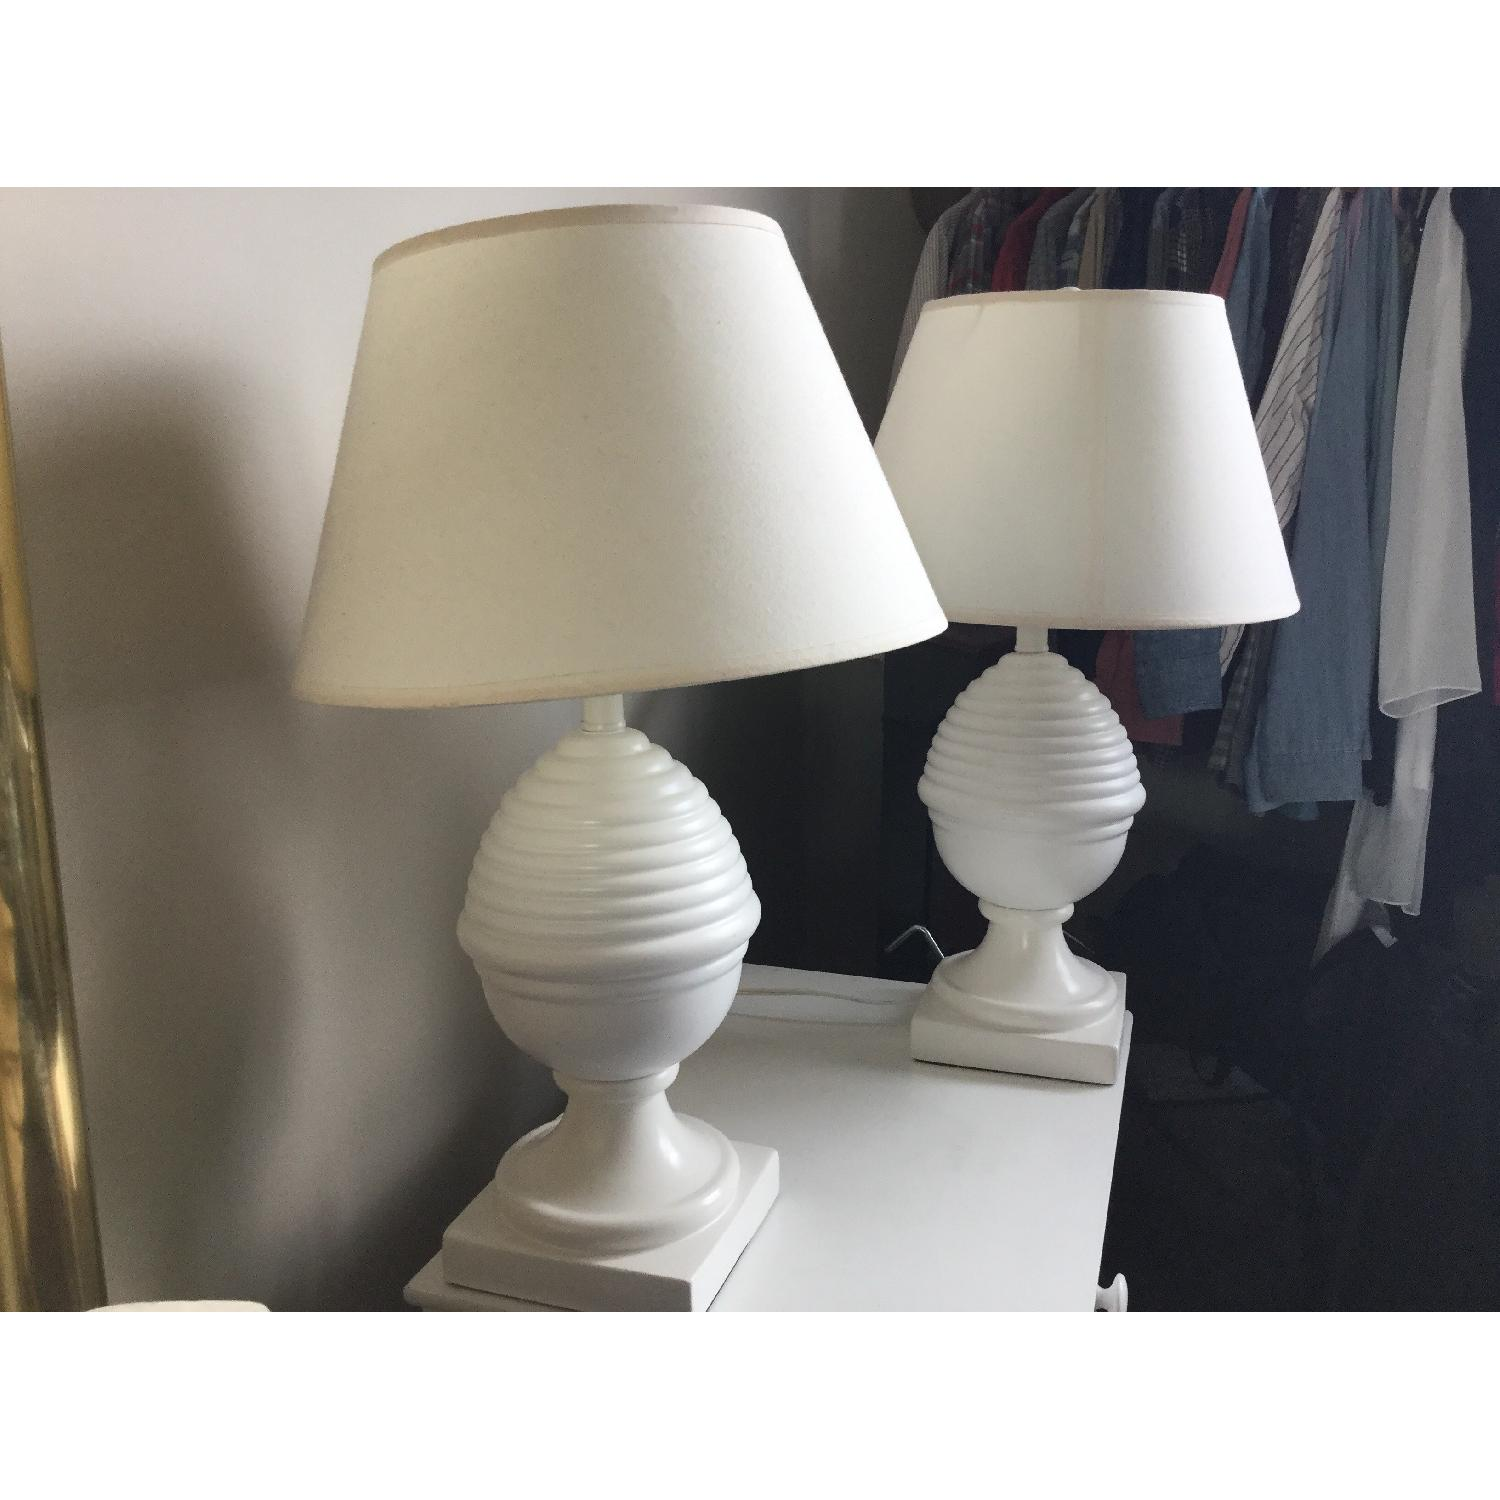 Matching White Lamps - image-2